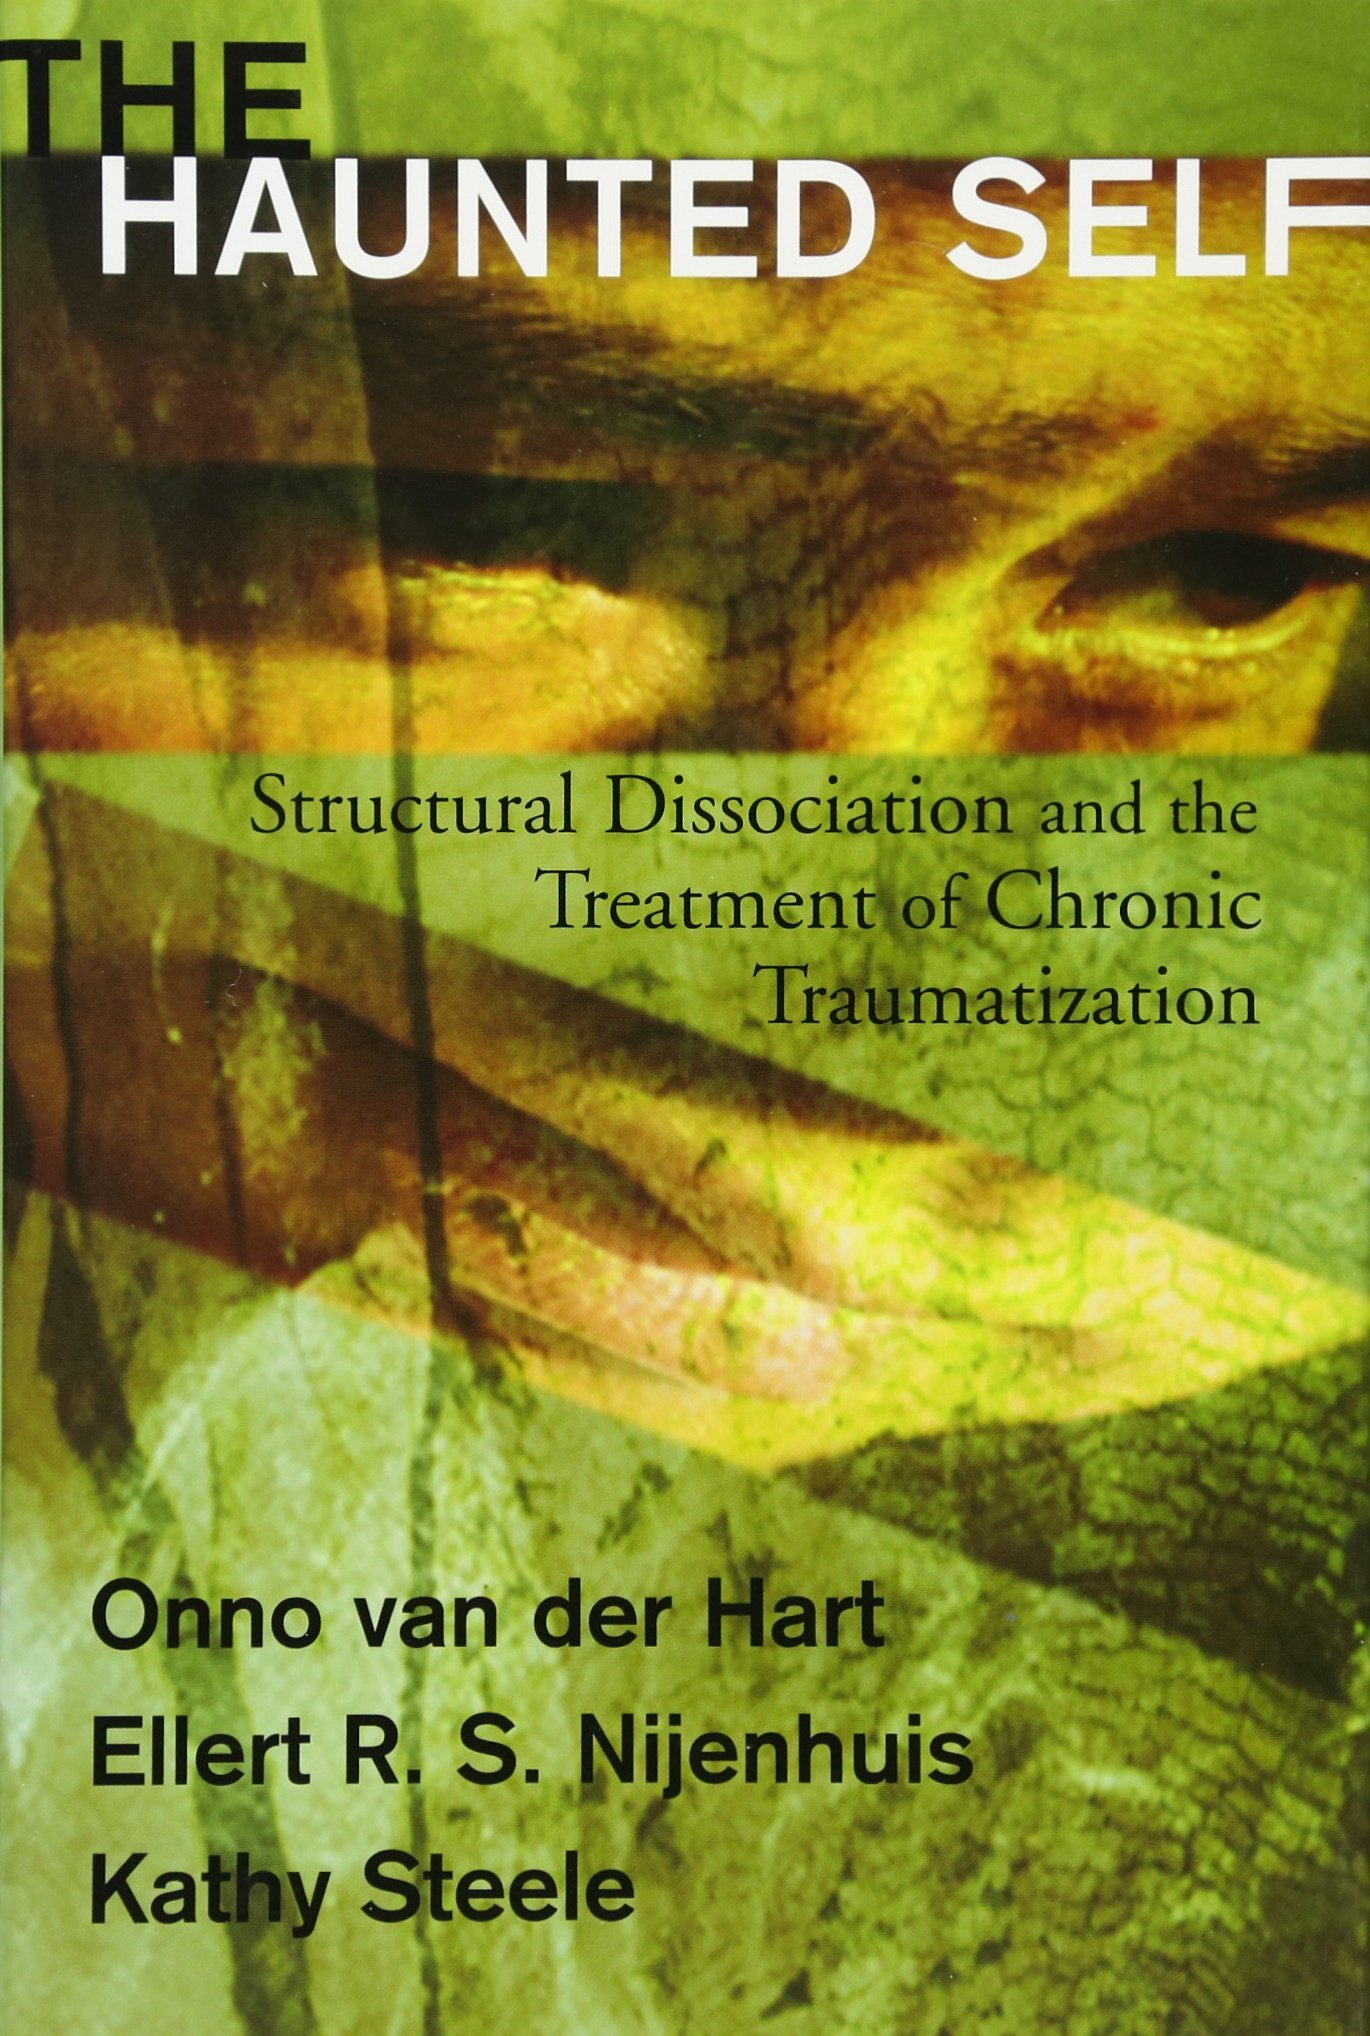 The Haunted Self: Structural Dissociation and the